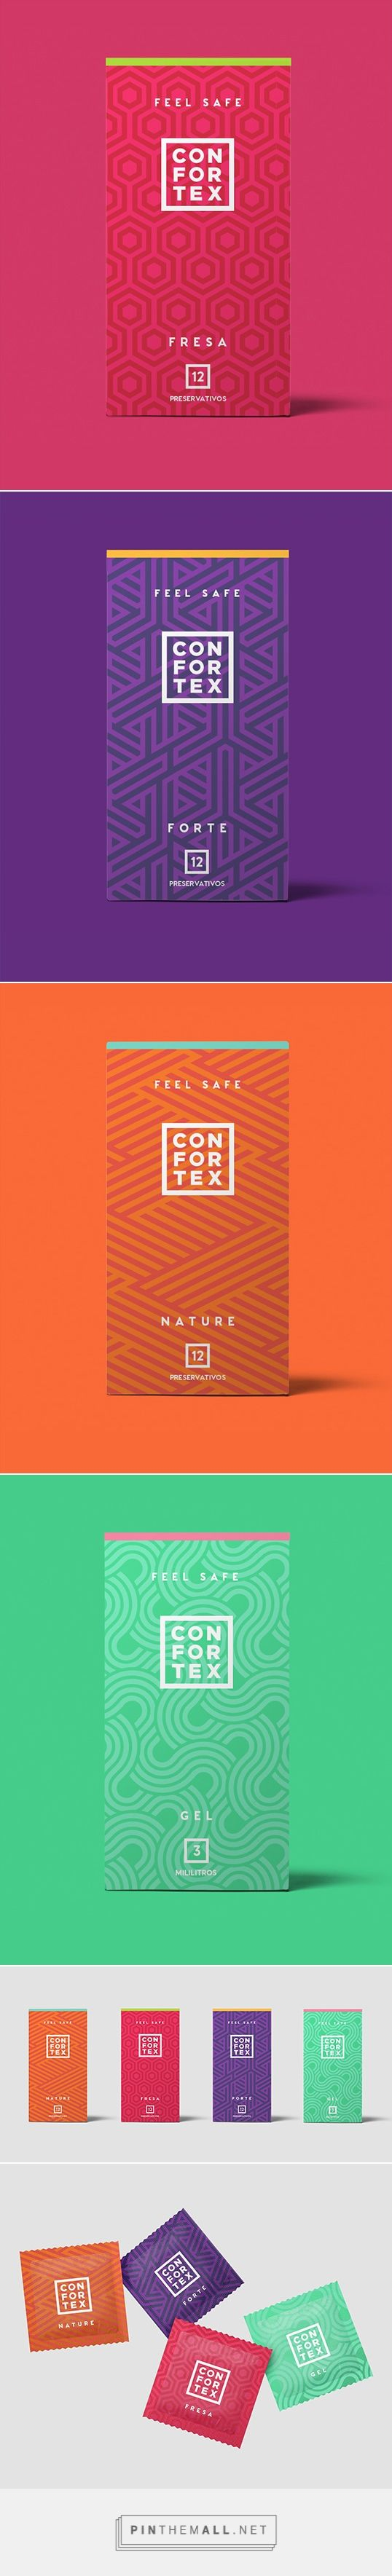 Confortex Condoms by The Wook Co. Pin curated by #SFields99 #packaging #design